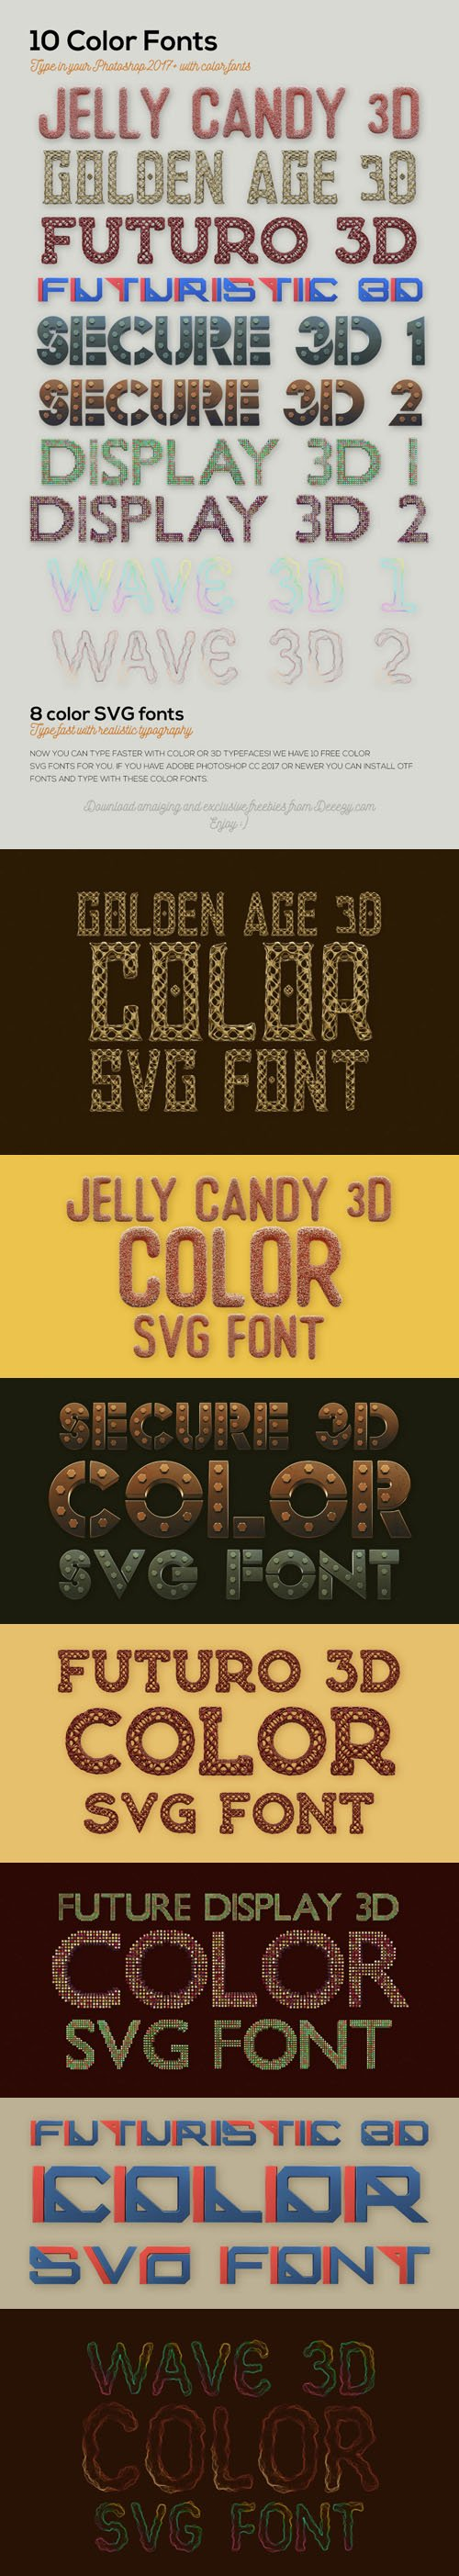 10 Color SVG Fonts for your Creative Projects